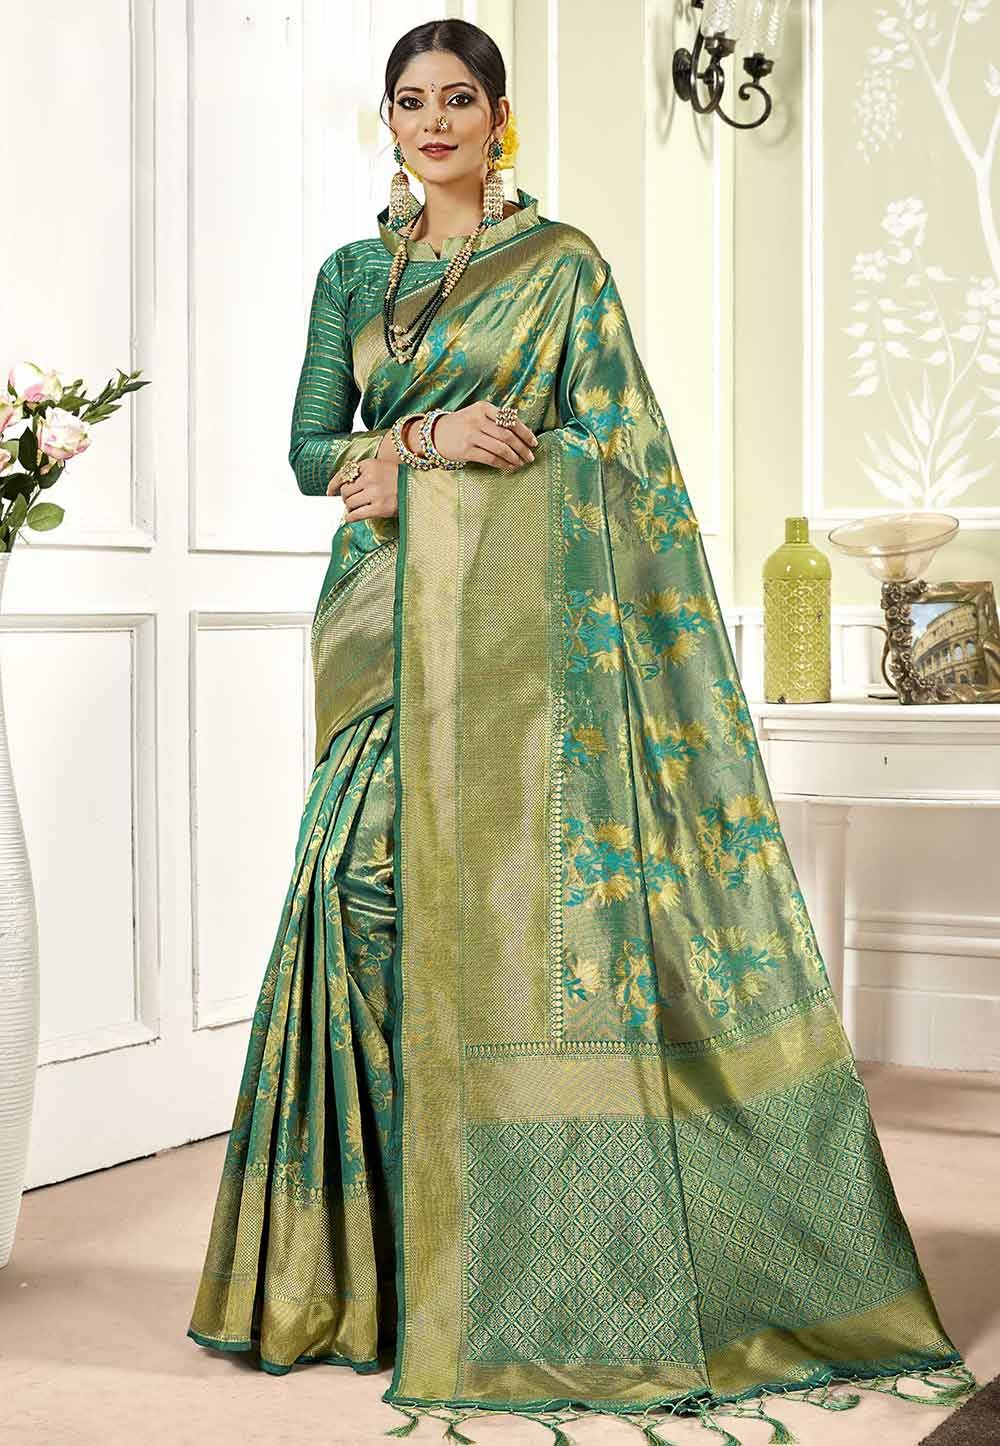 Banarasi Silk Saree in Green Colour.